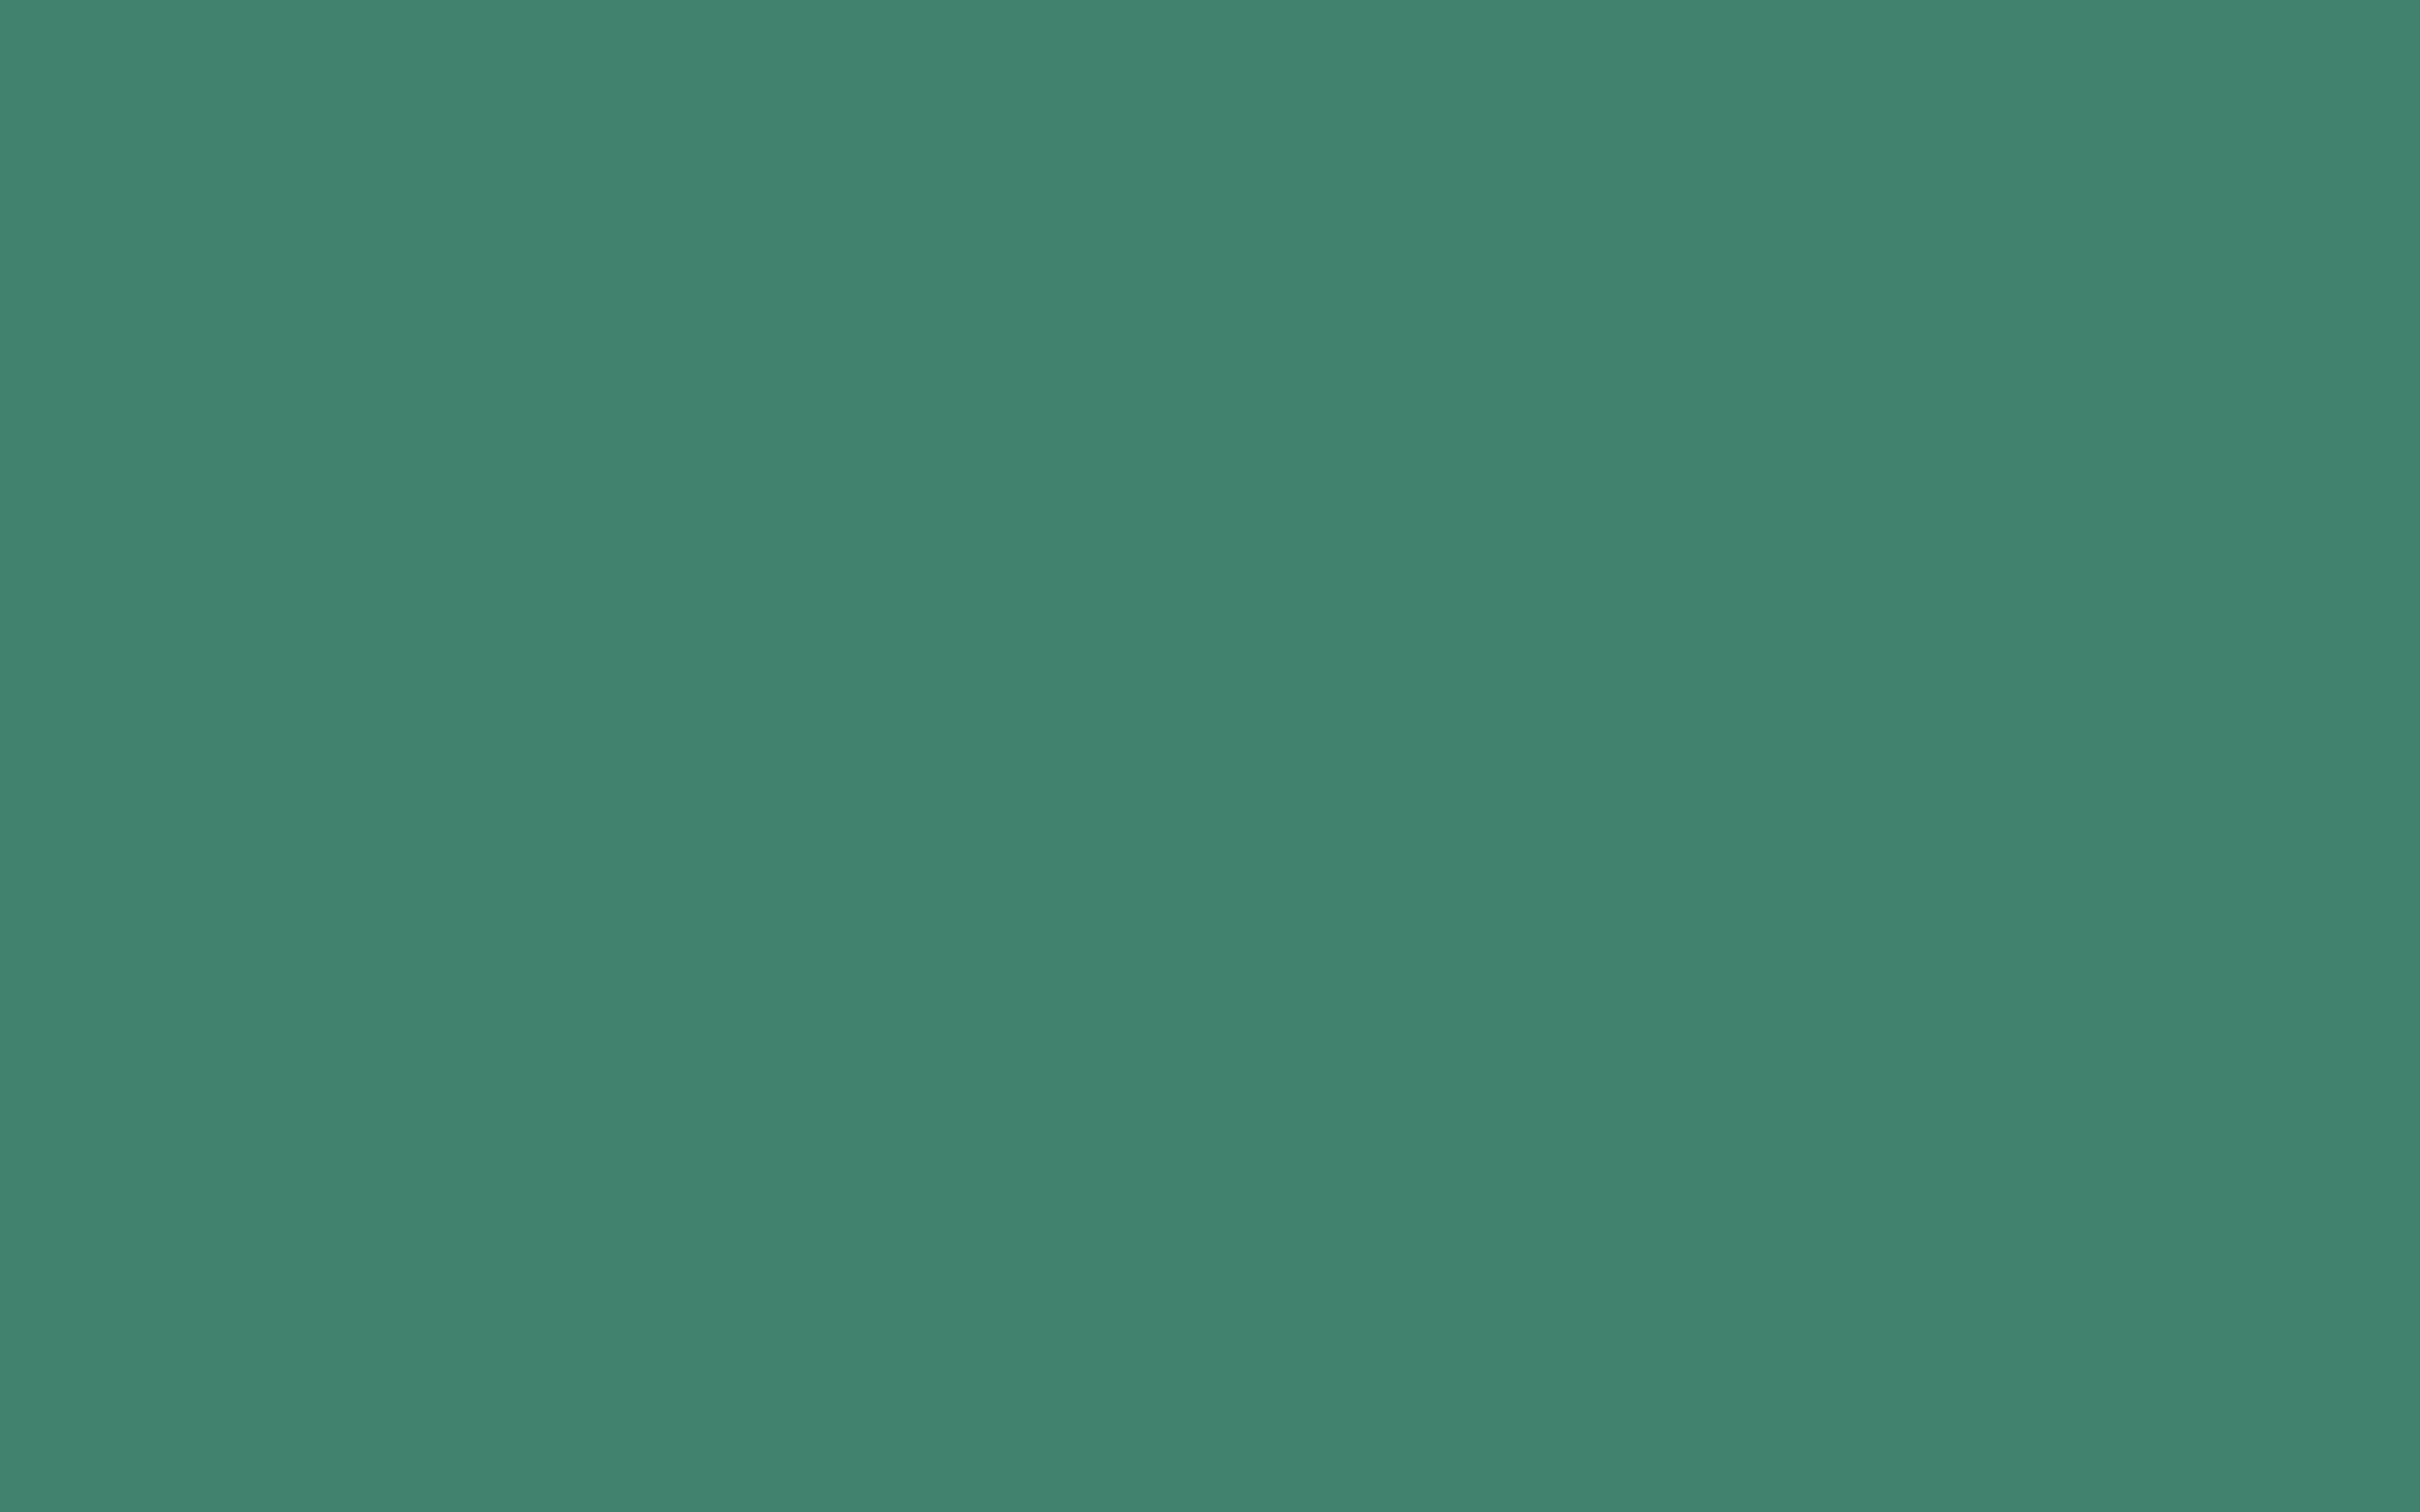 2560x1600 Viridian Solid Color Background